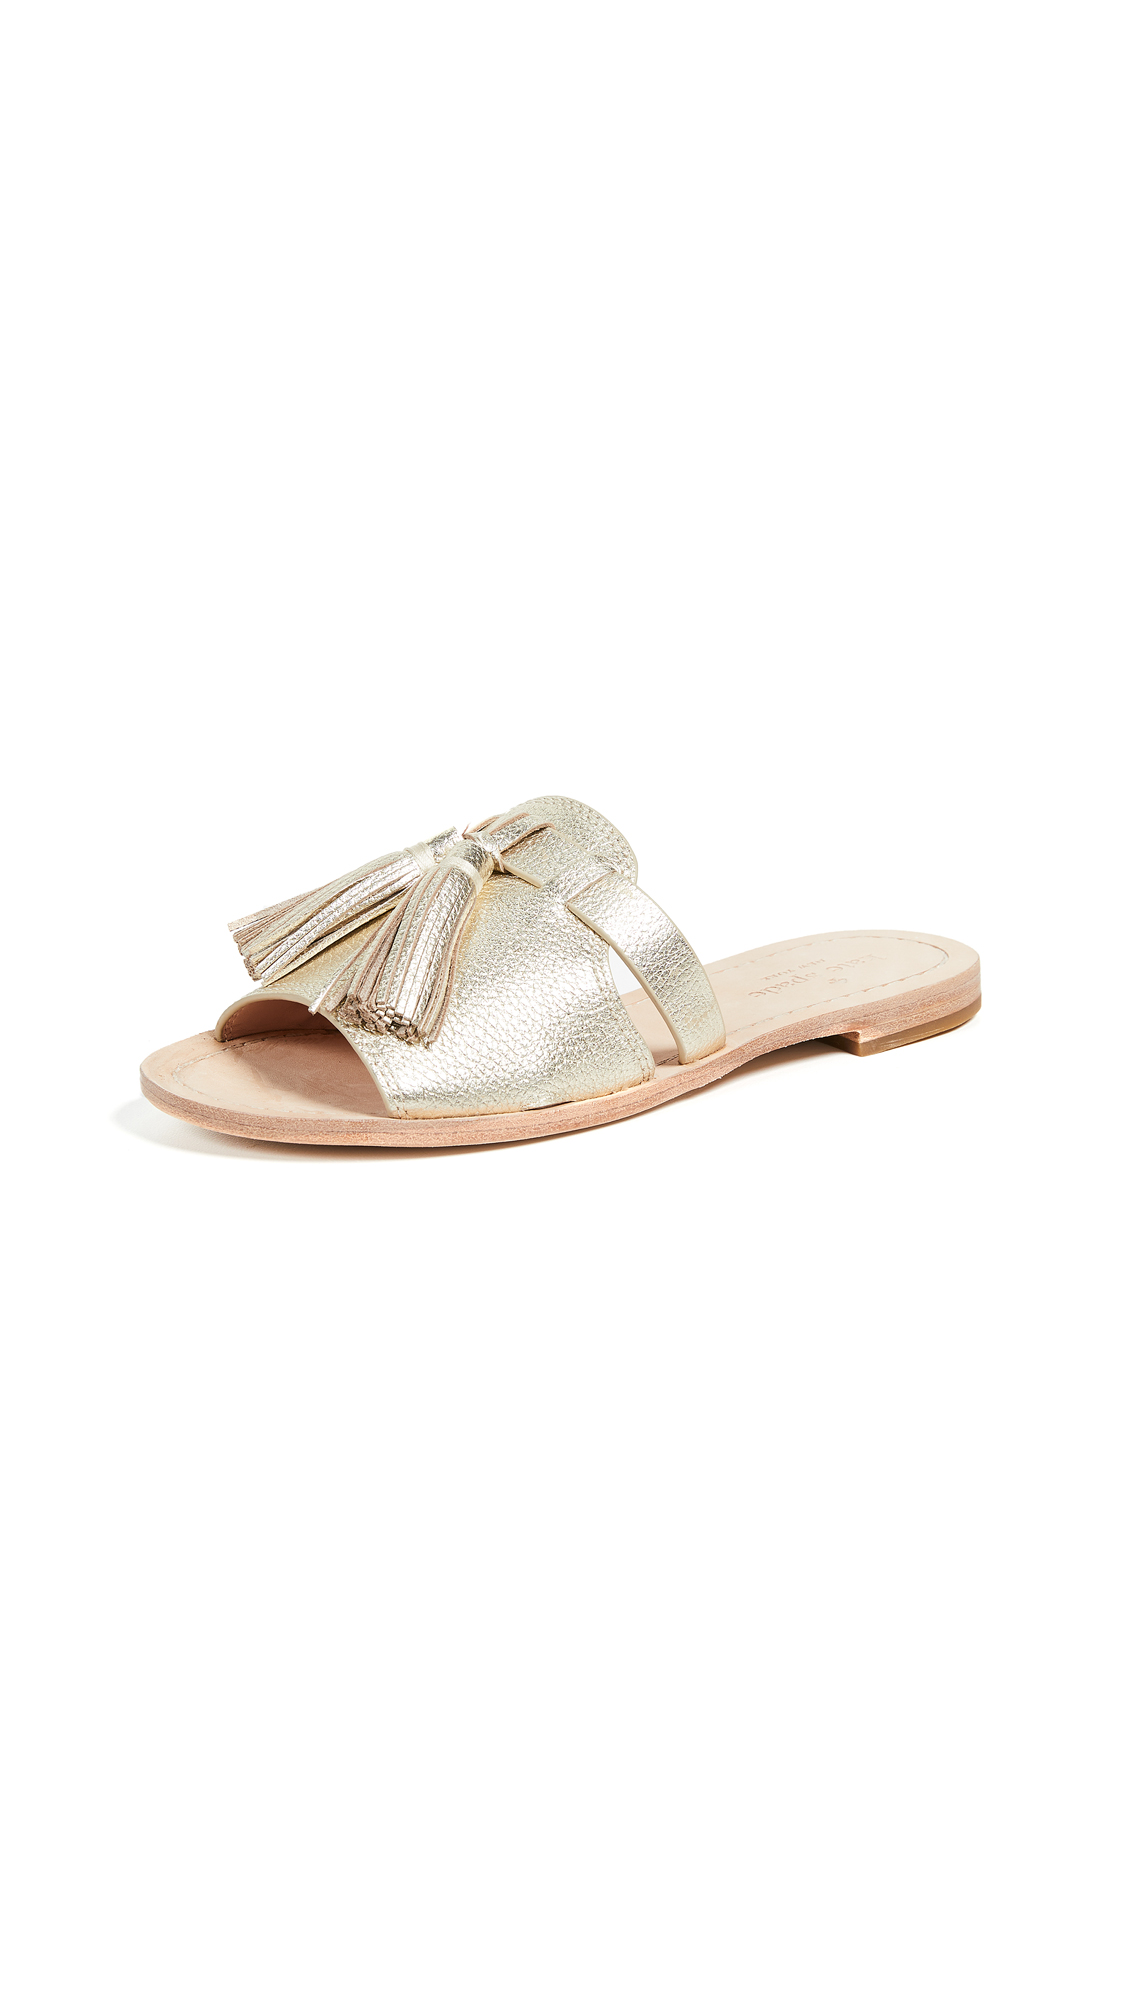 Kate Spade New York Coby Slides - Gold Metallic